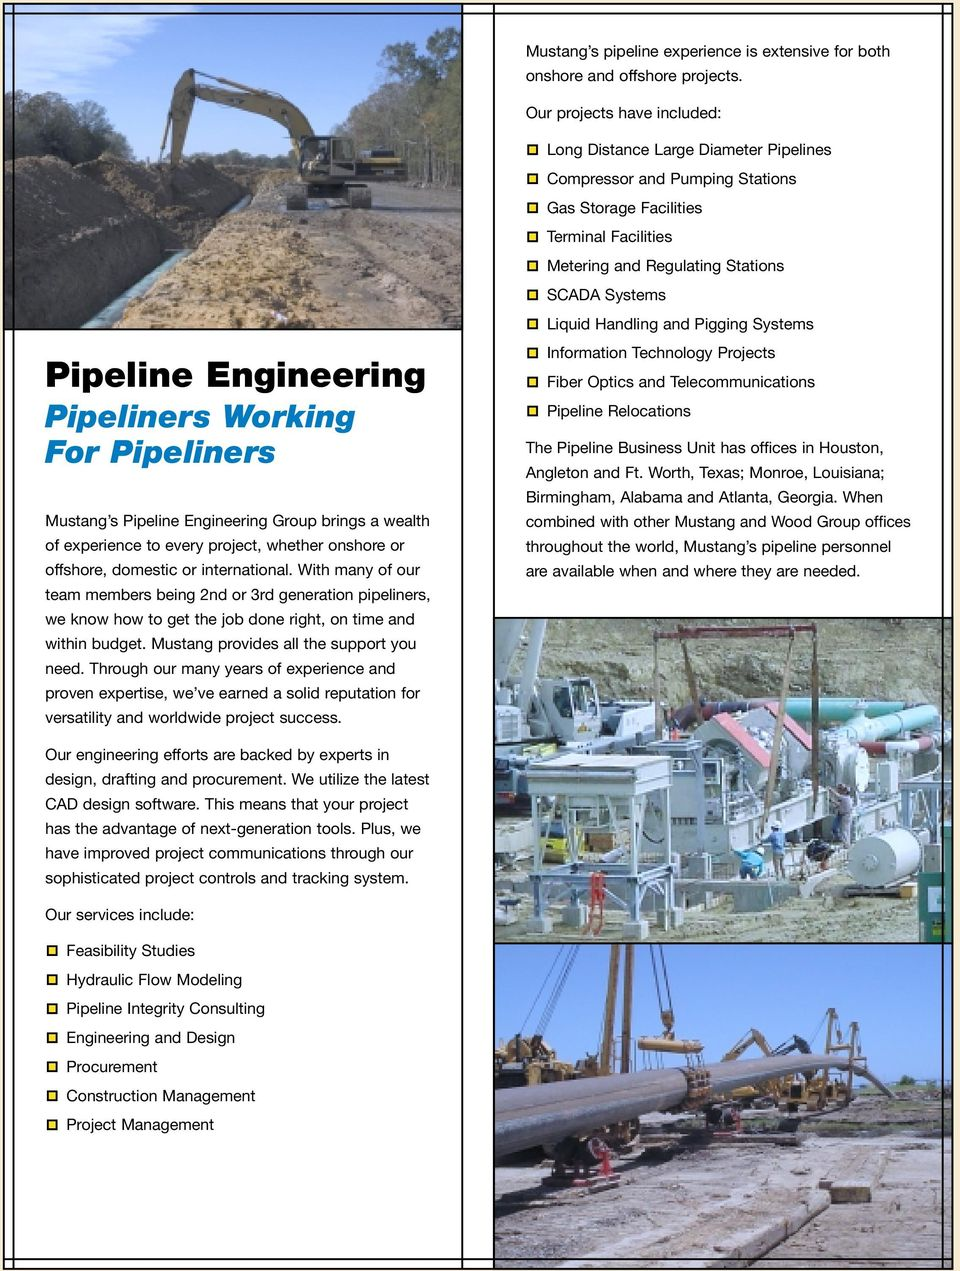 Handling and Pigging Systems Pipeline Engineering Pipeliners Working For Pipeliners Mustang s Pipeline Engineering Group brings a wealth of experience to every project, whether onshore or offshore,